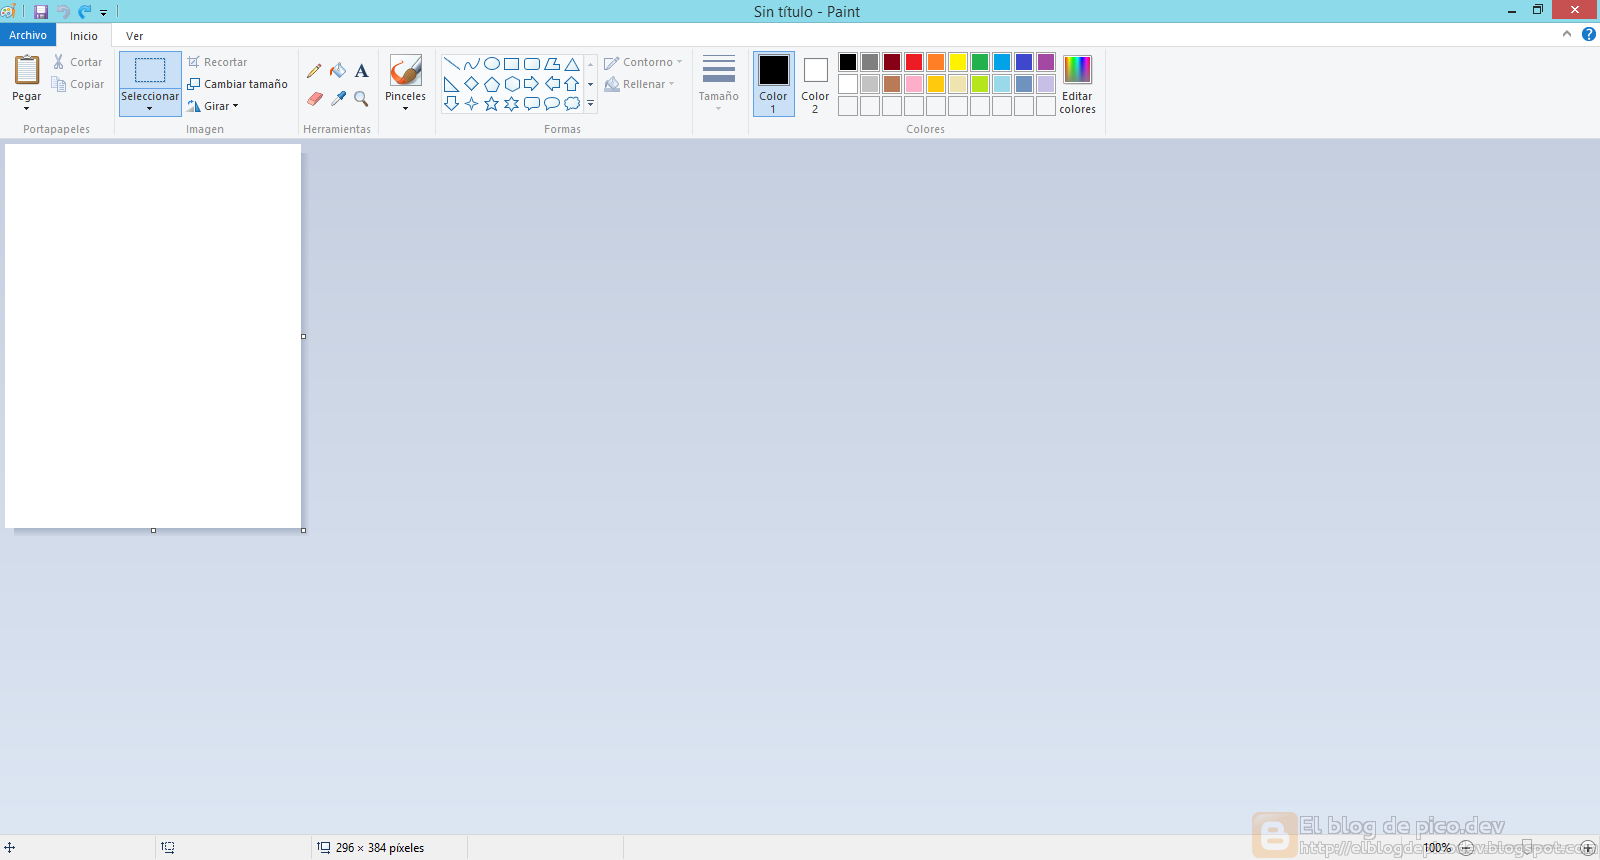 el paint de windows: